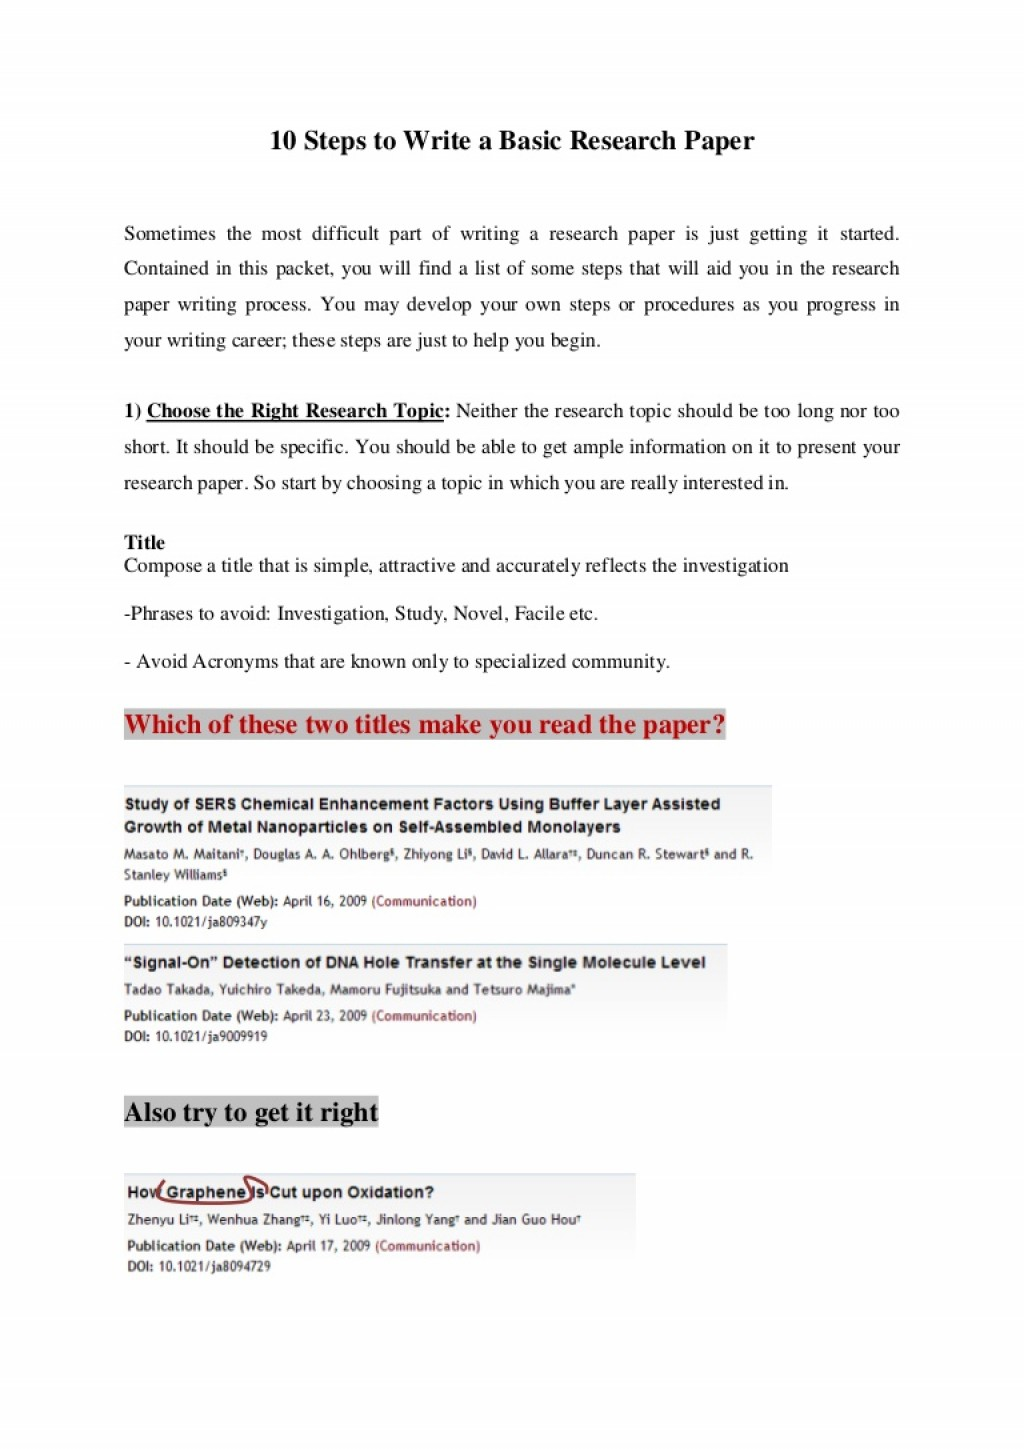 001 Research Paper 10stepstowriteabasicresearchpaper Thumbnail How To Write An Introduction For Astounding A Slideshare Large